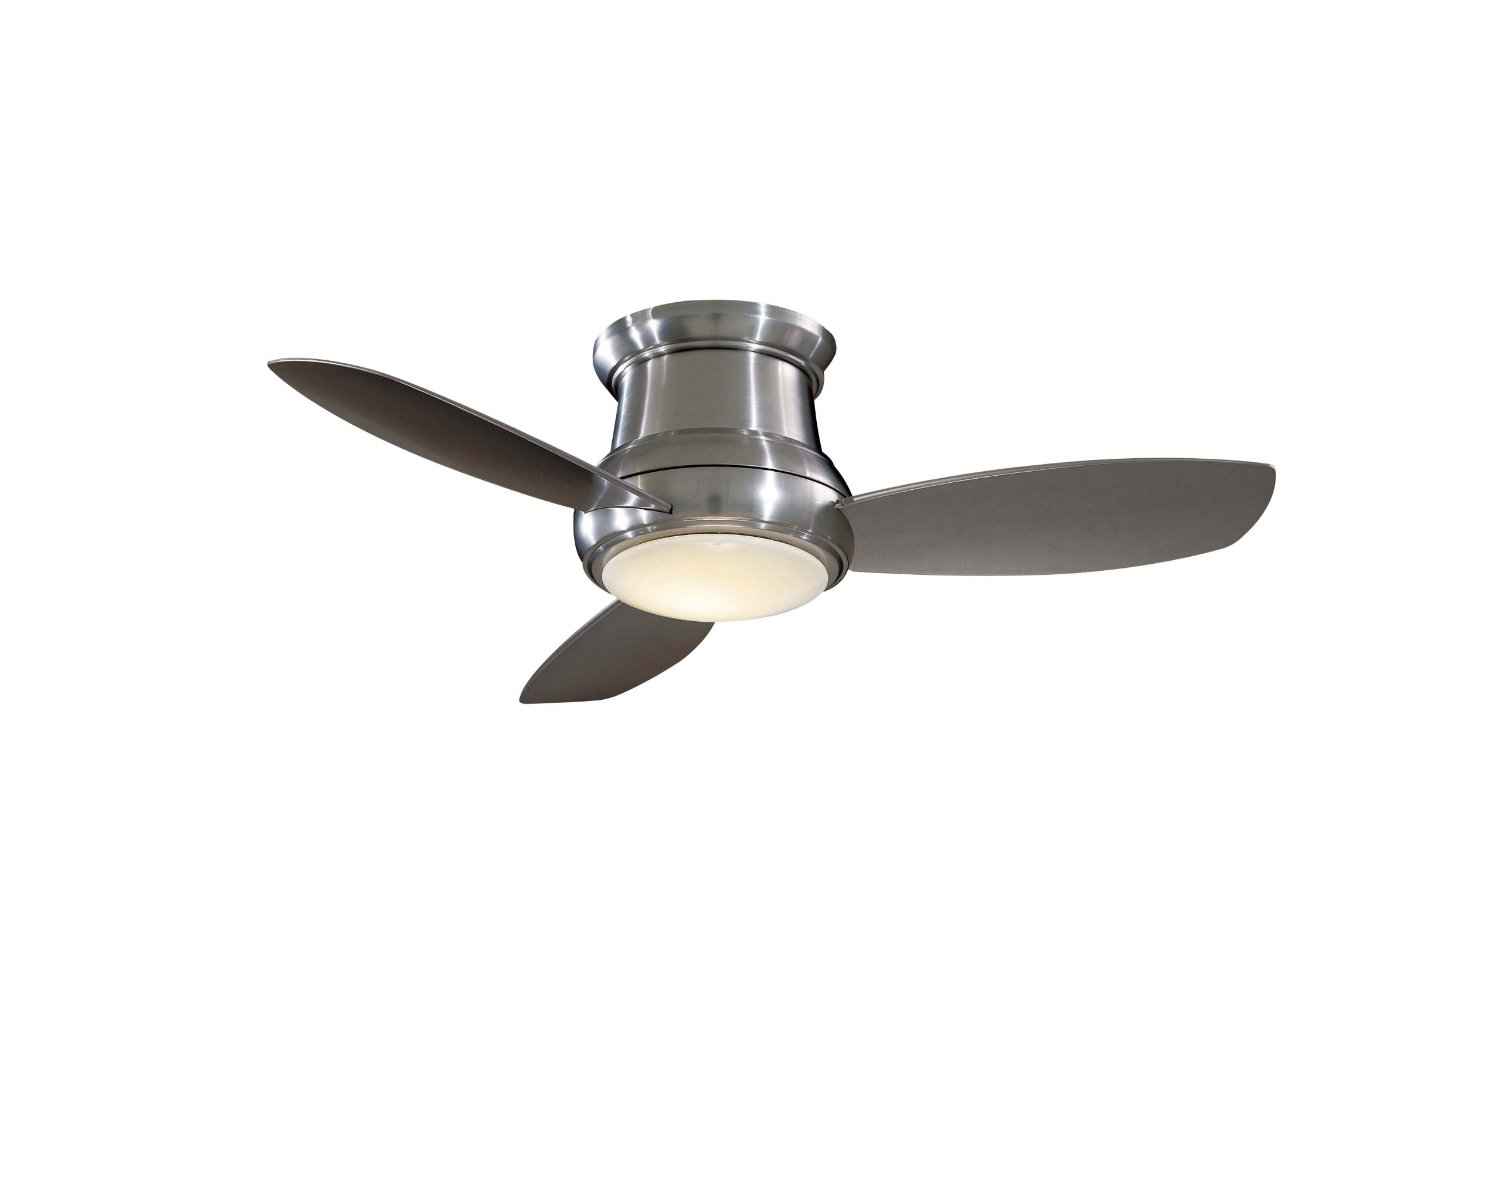 Flush Mount Ceiling Fans With Light And Remote Control